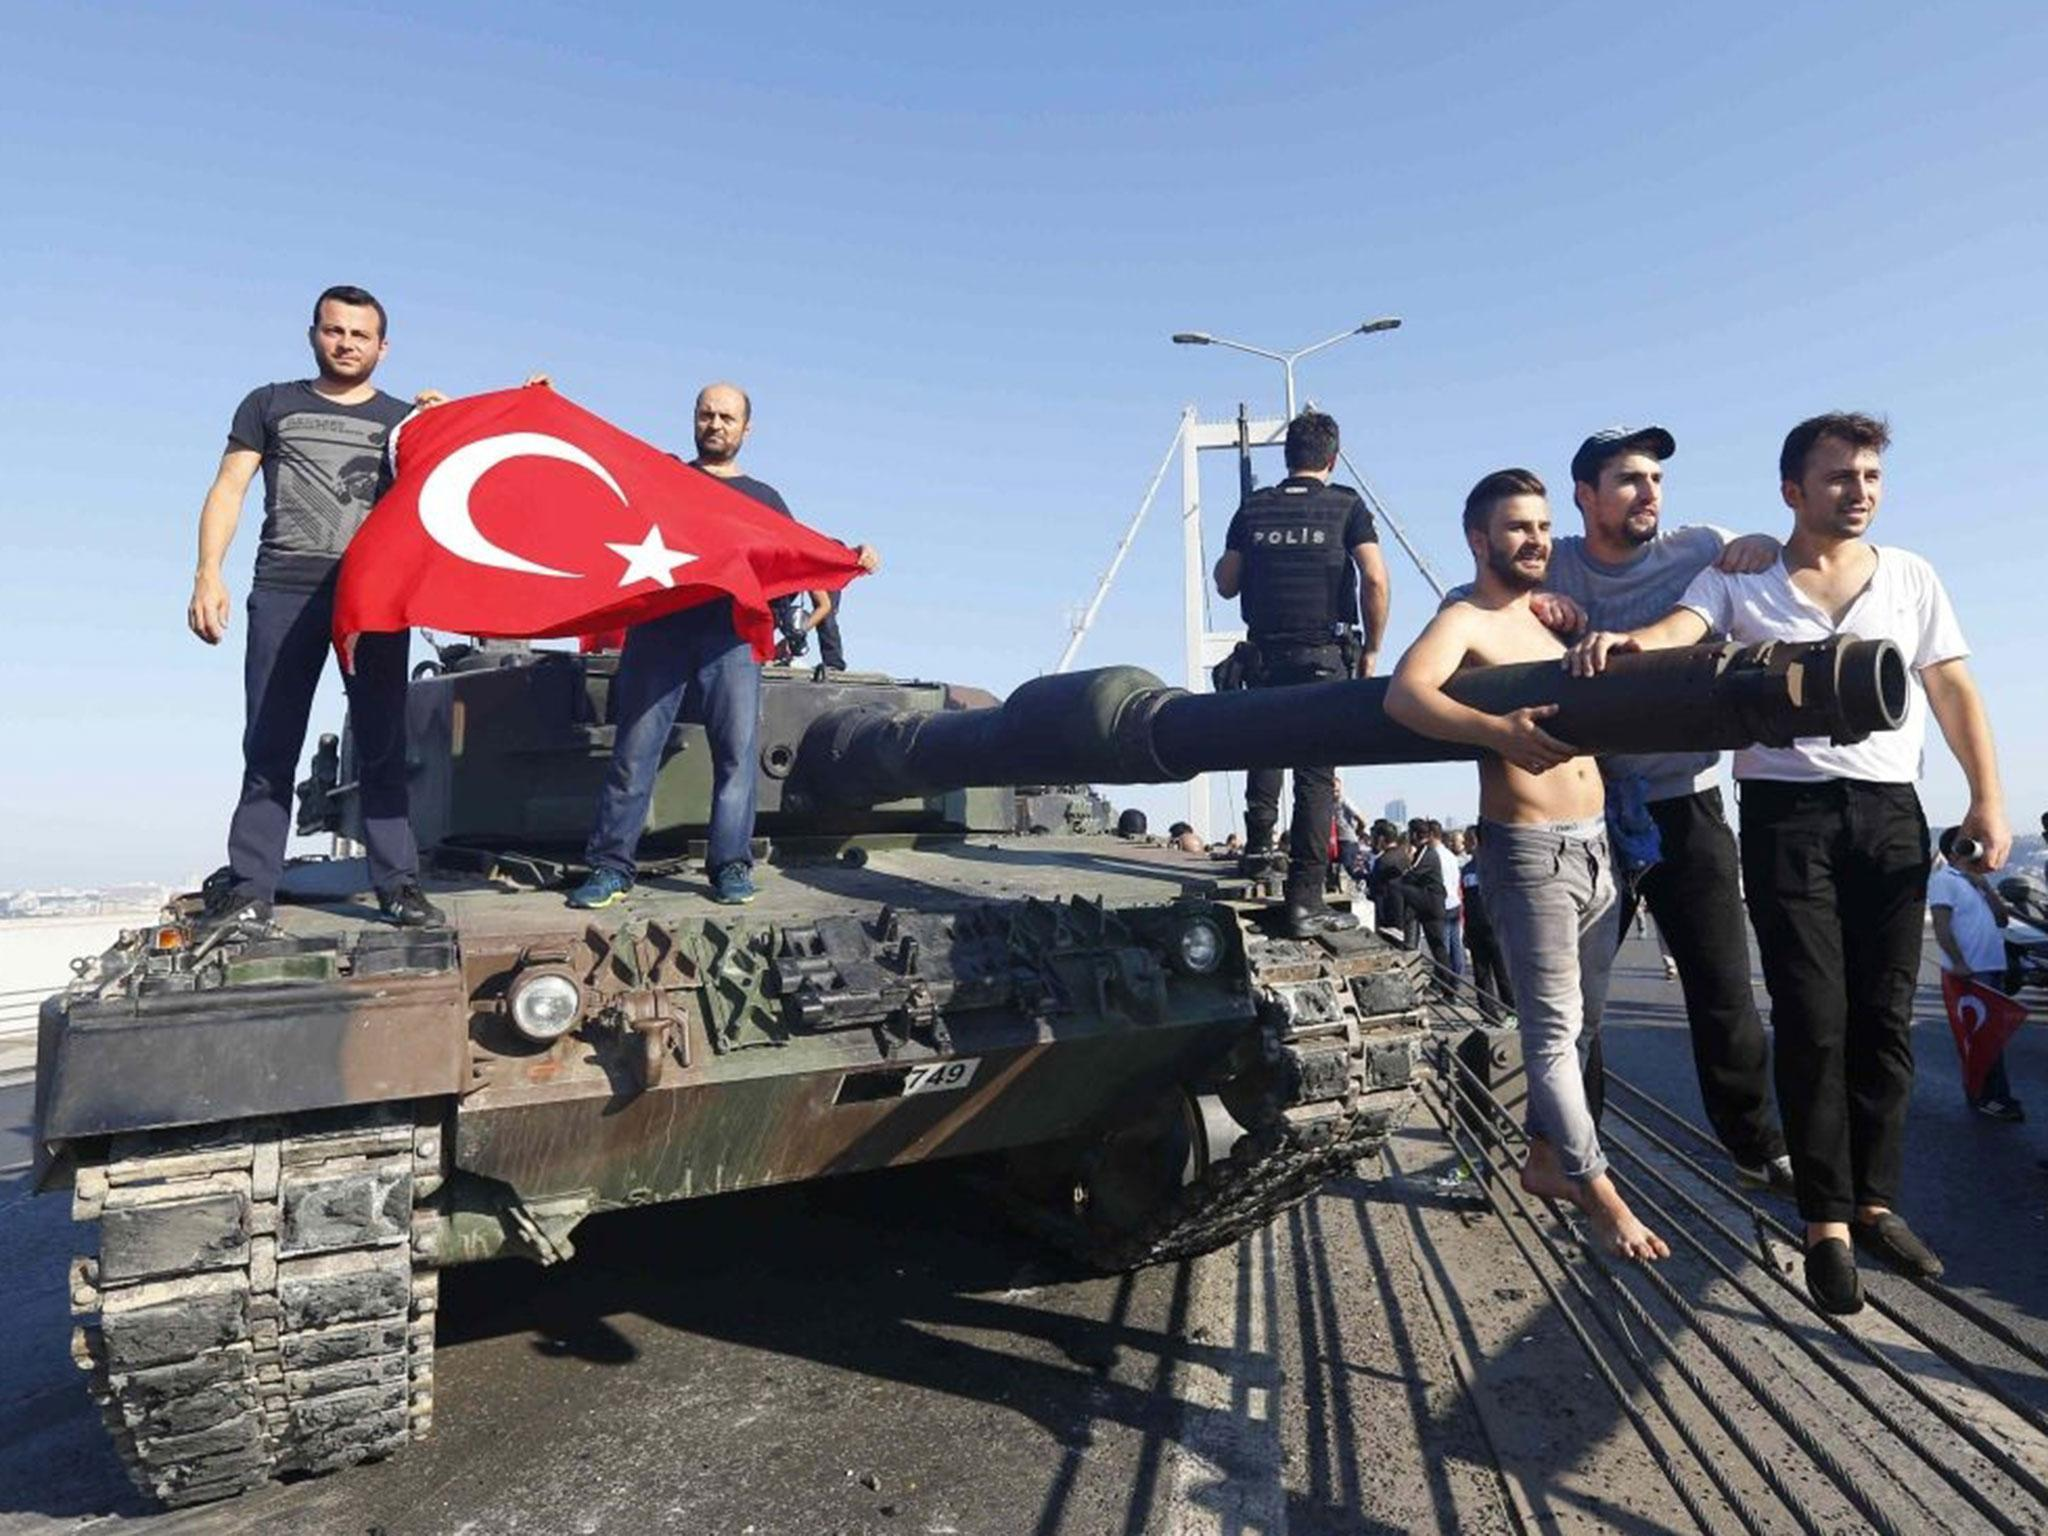 an analysis of the attempted coup in turkey The attempted military coup friday night in istanbul is a shock, perhaps most of all to turks.